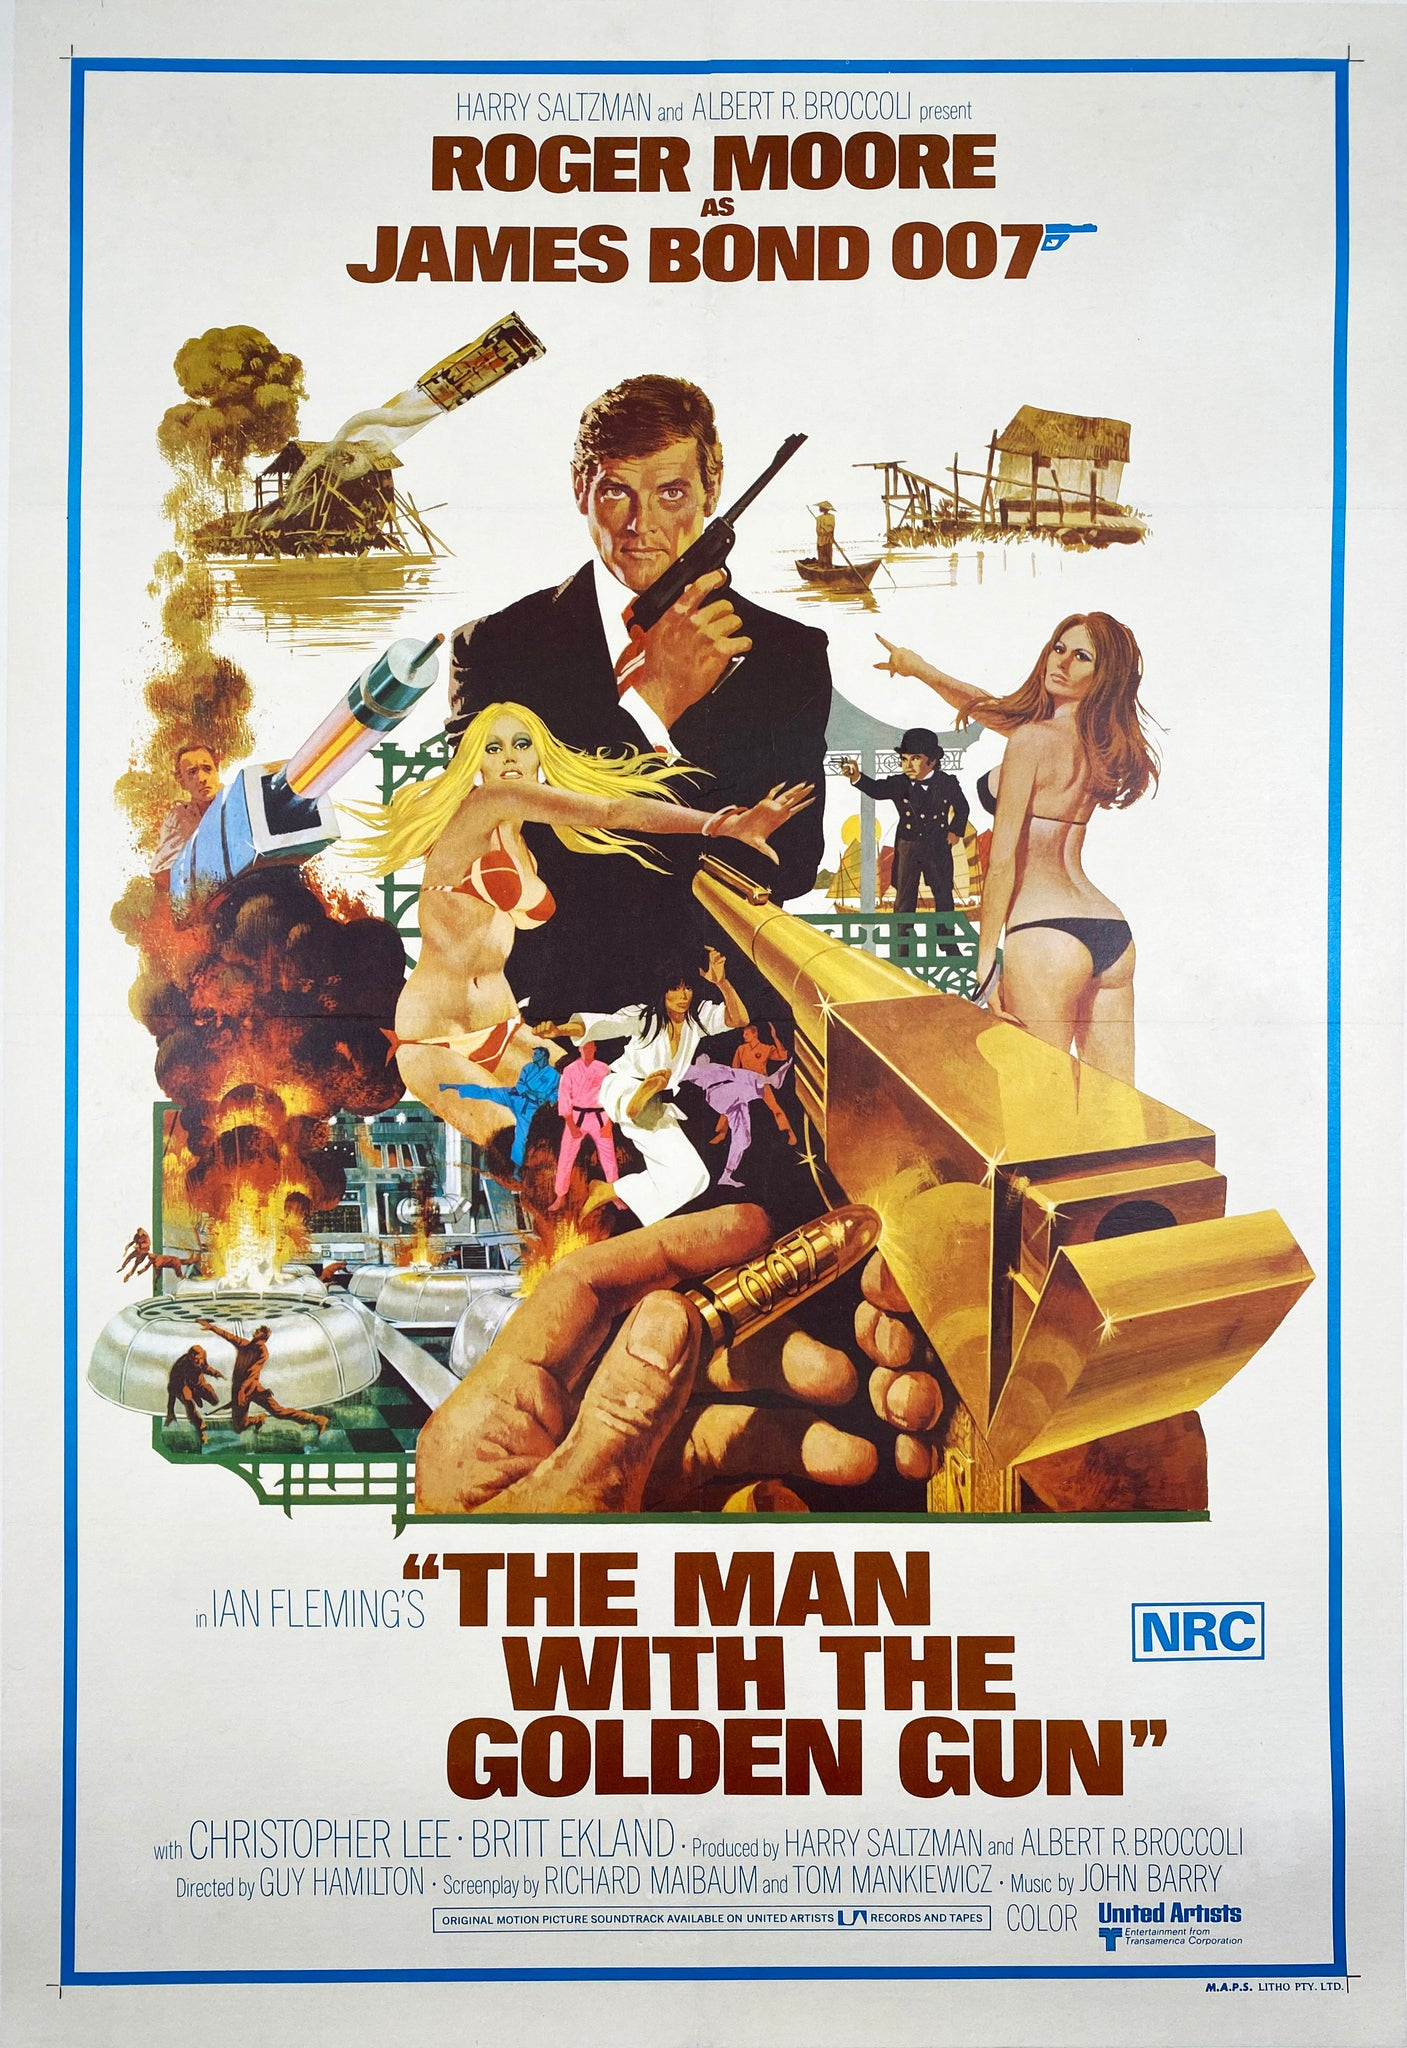 The Man With the Golden Gun - Vintage Film Poster 1974